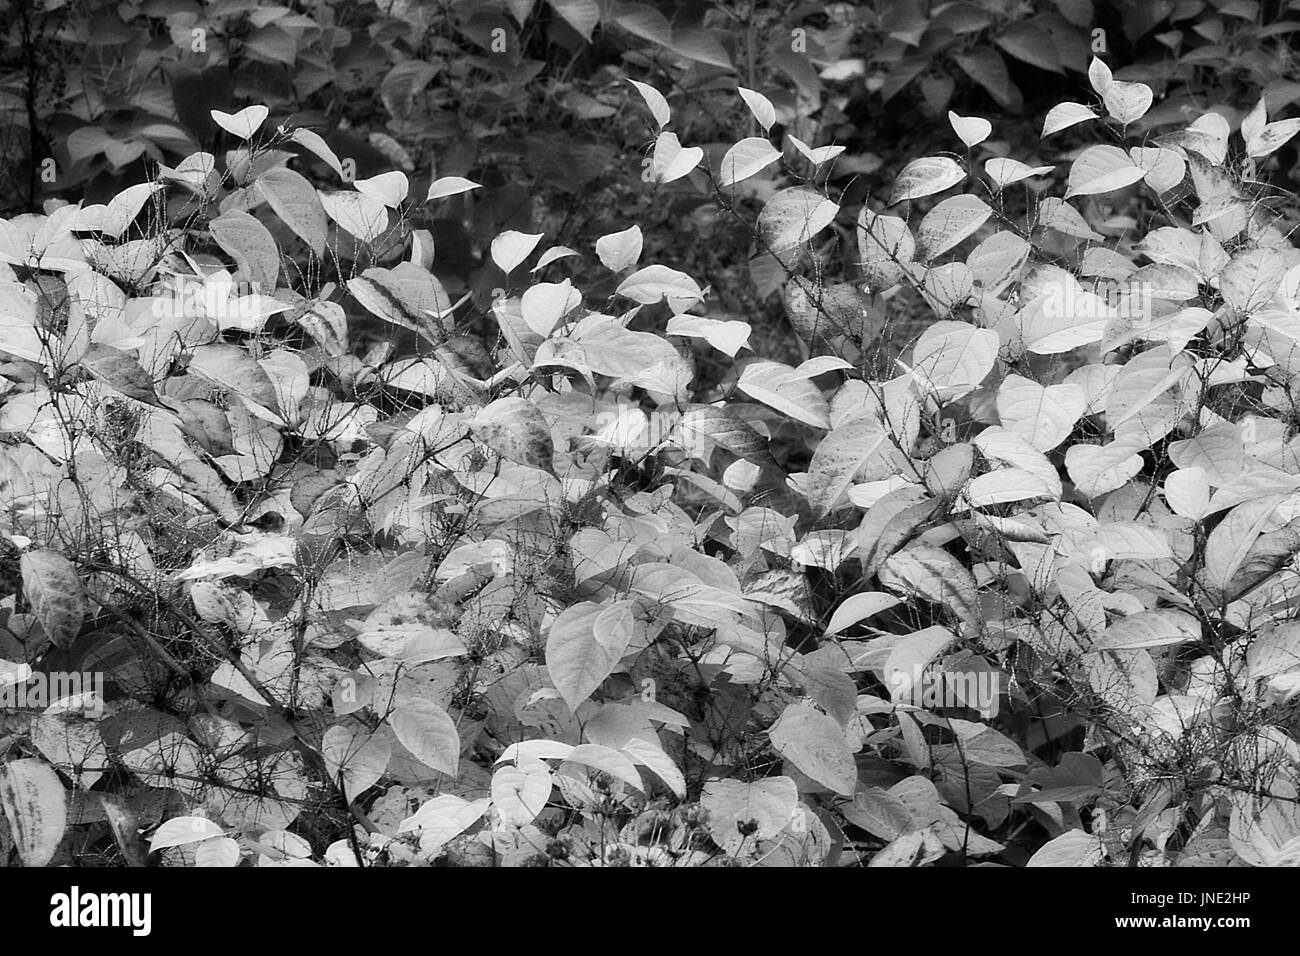 Japanese knotweed background in black and white - Stock Image